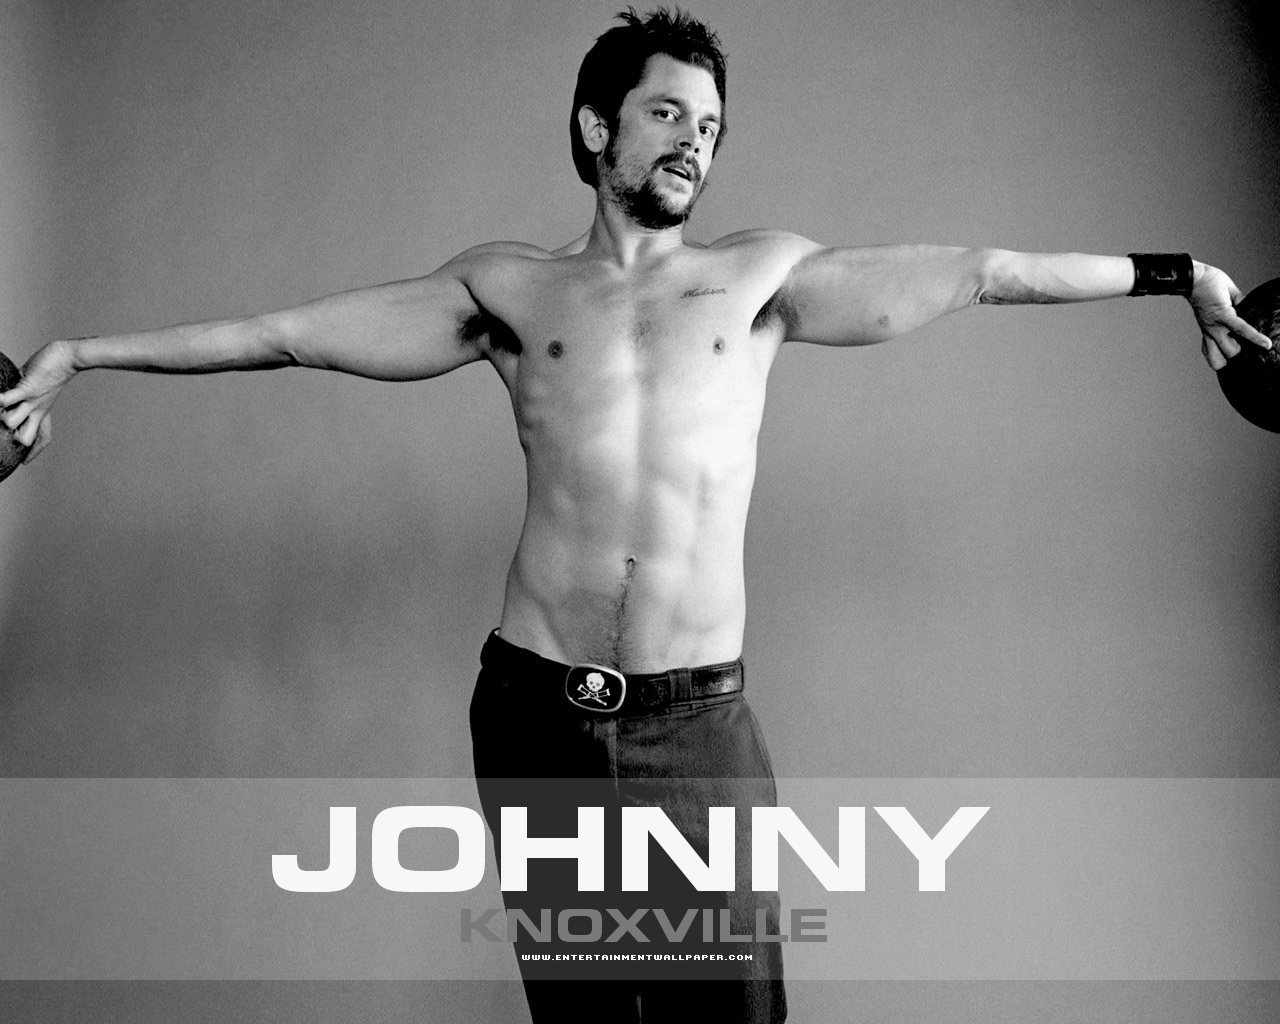 naked pictures of johnny knoxville